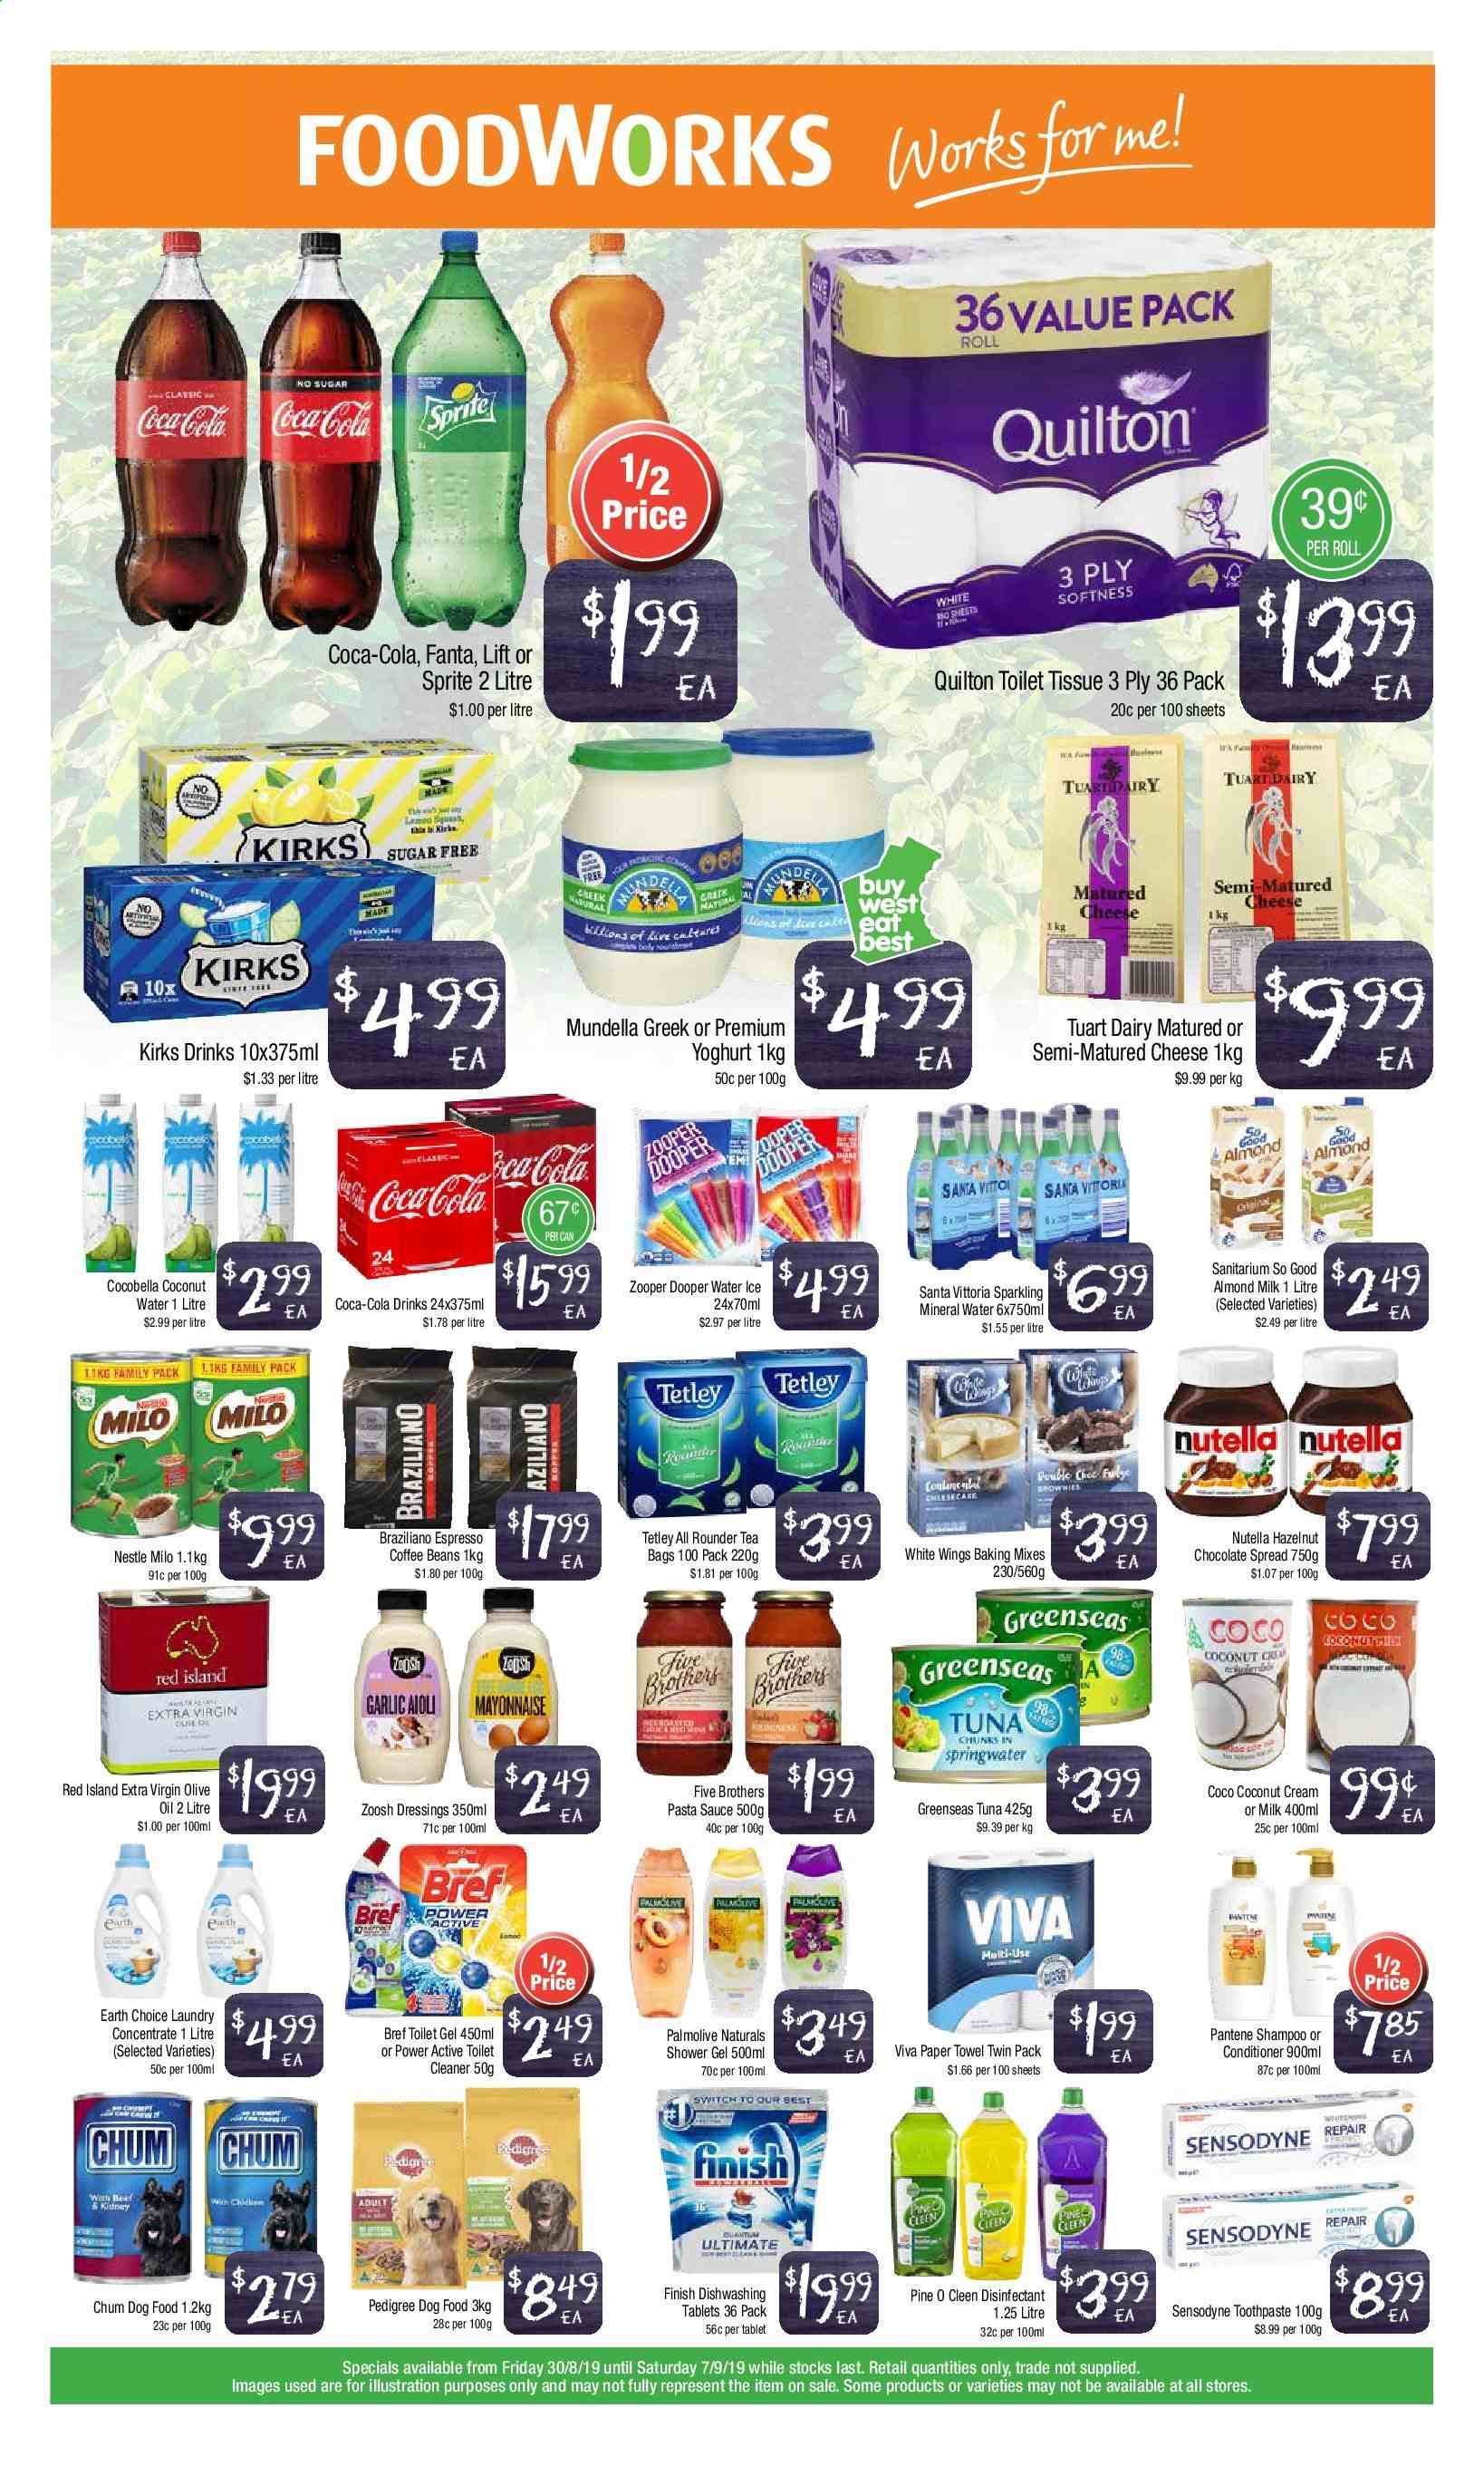 Foodworks catalogue and weekly specials 30 8 2019 - 7 9 2019